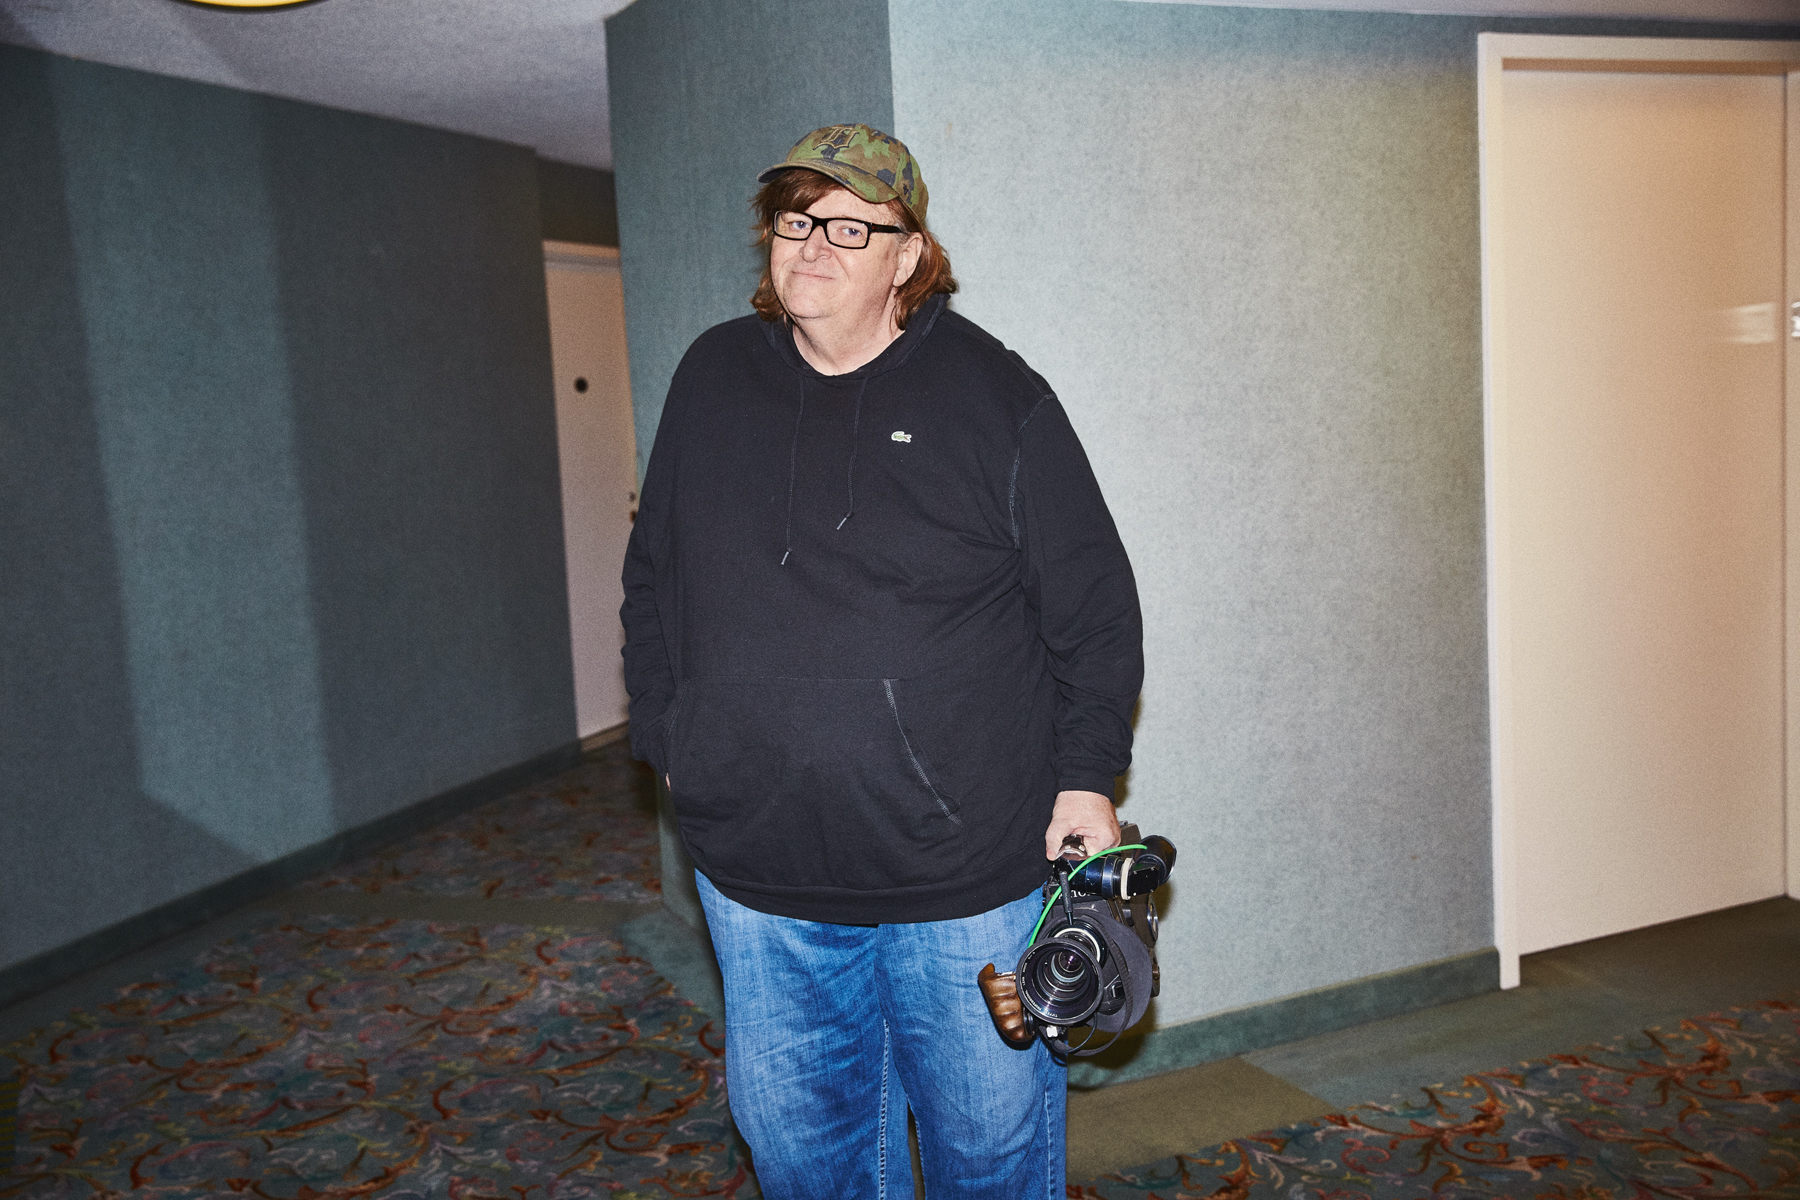 Michael Moore for the New York Times